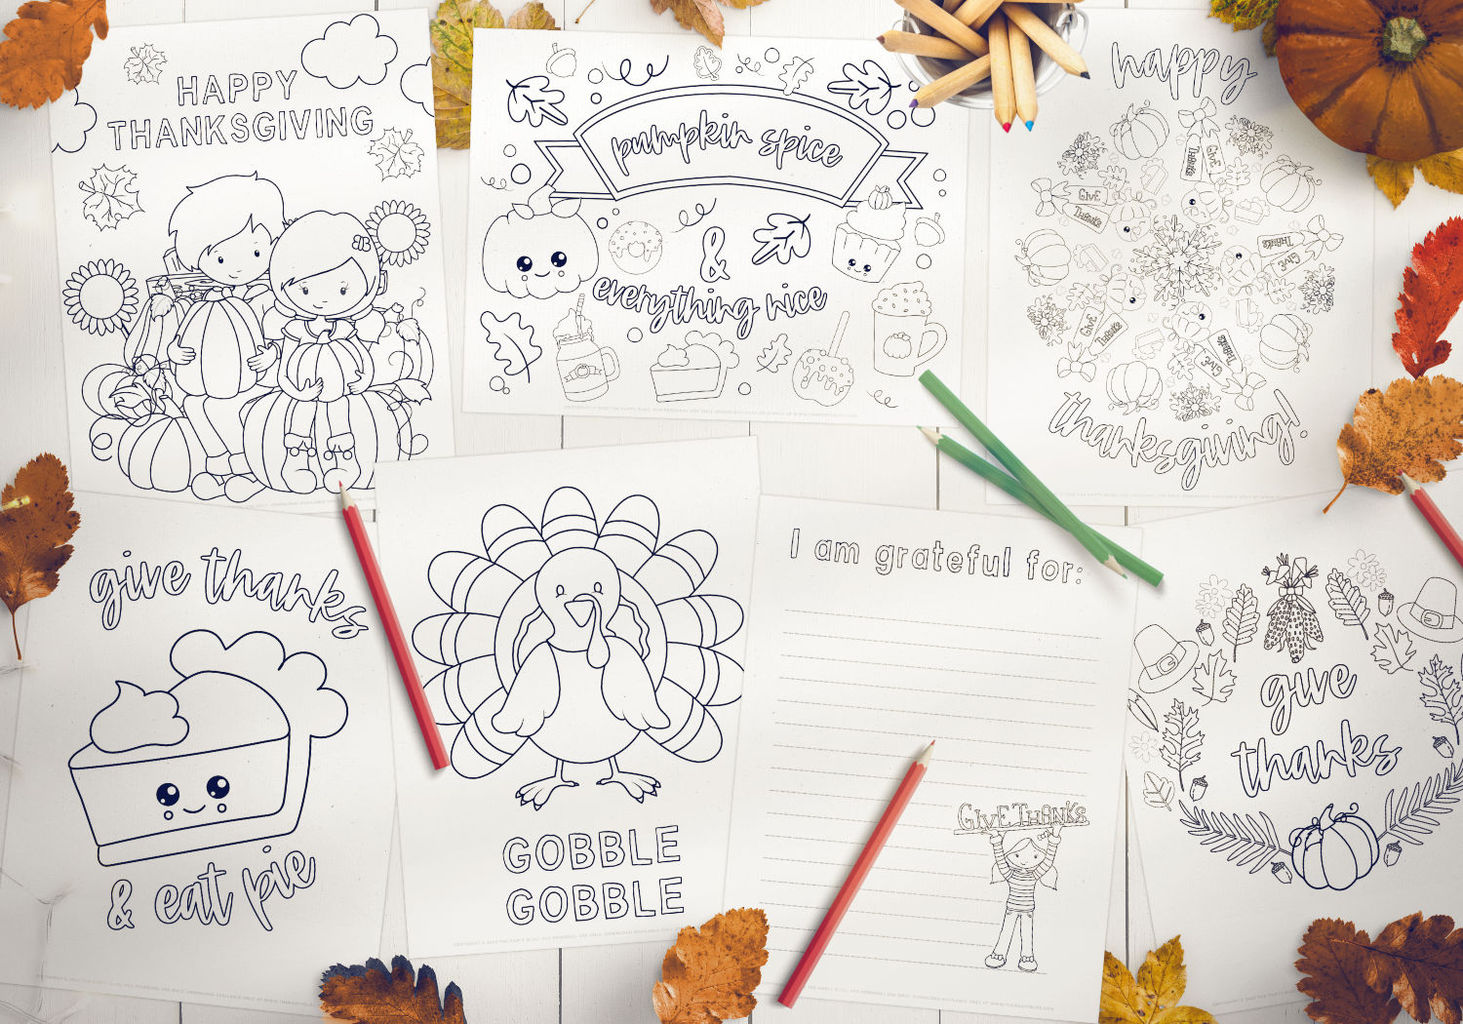 7 Thanksgiving themed coloring pages spread out on a white wood background with fall leaves, pumpkins and color pencils scattered around